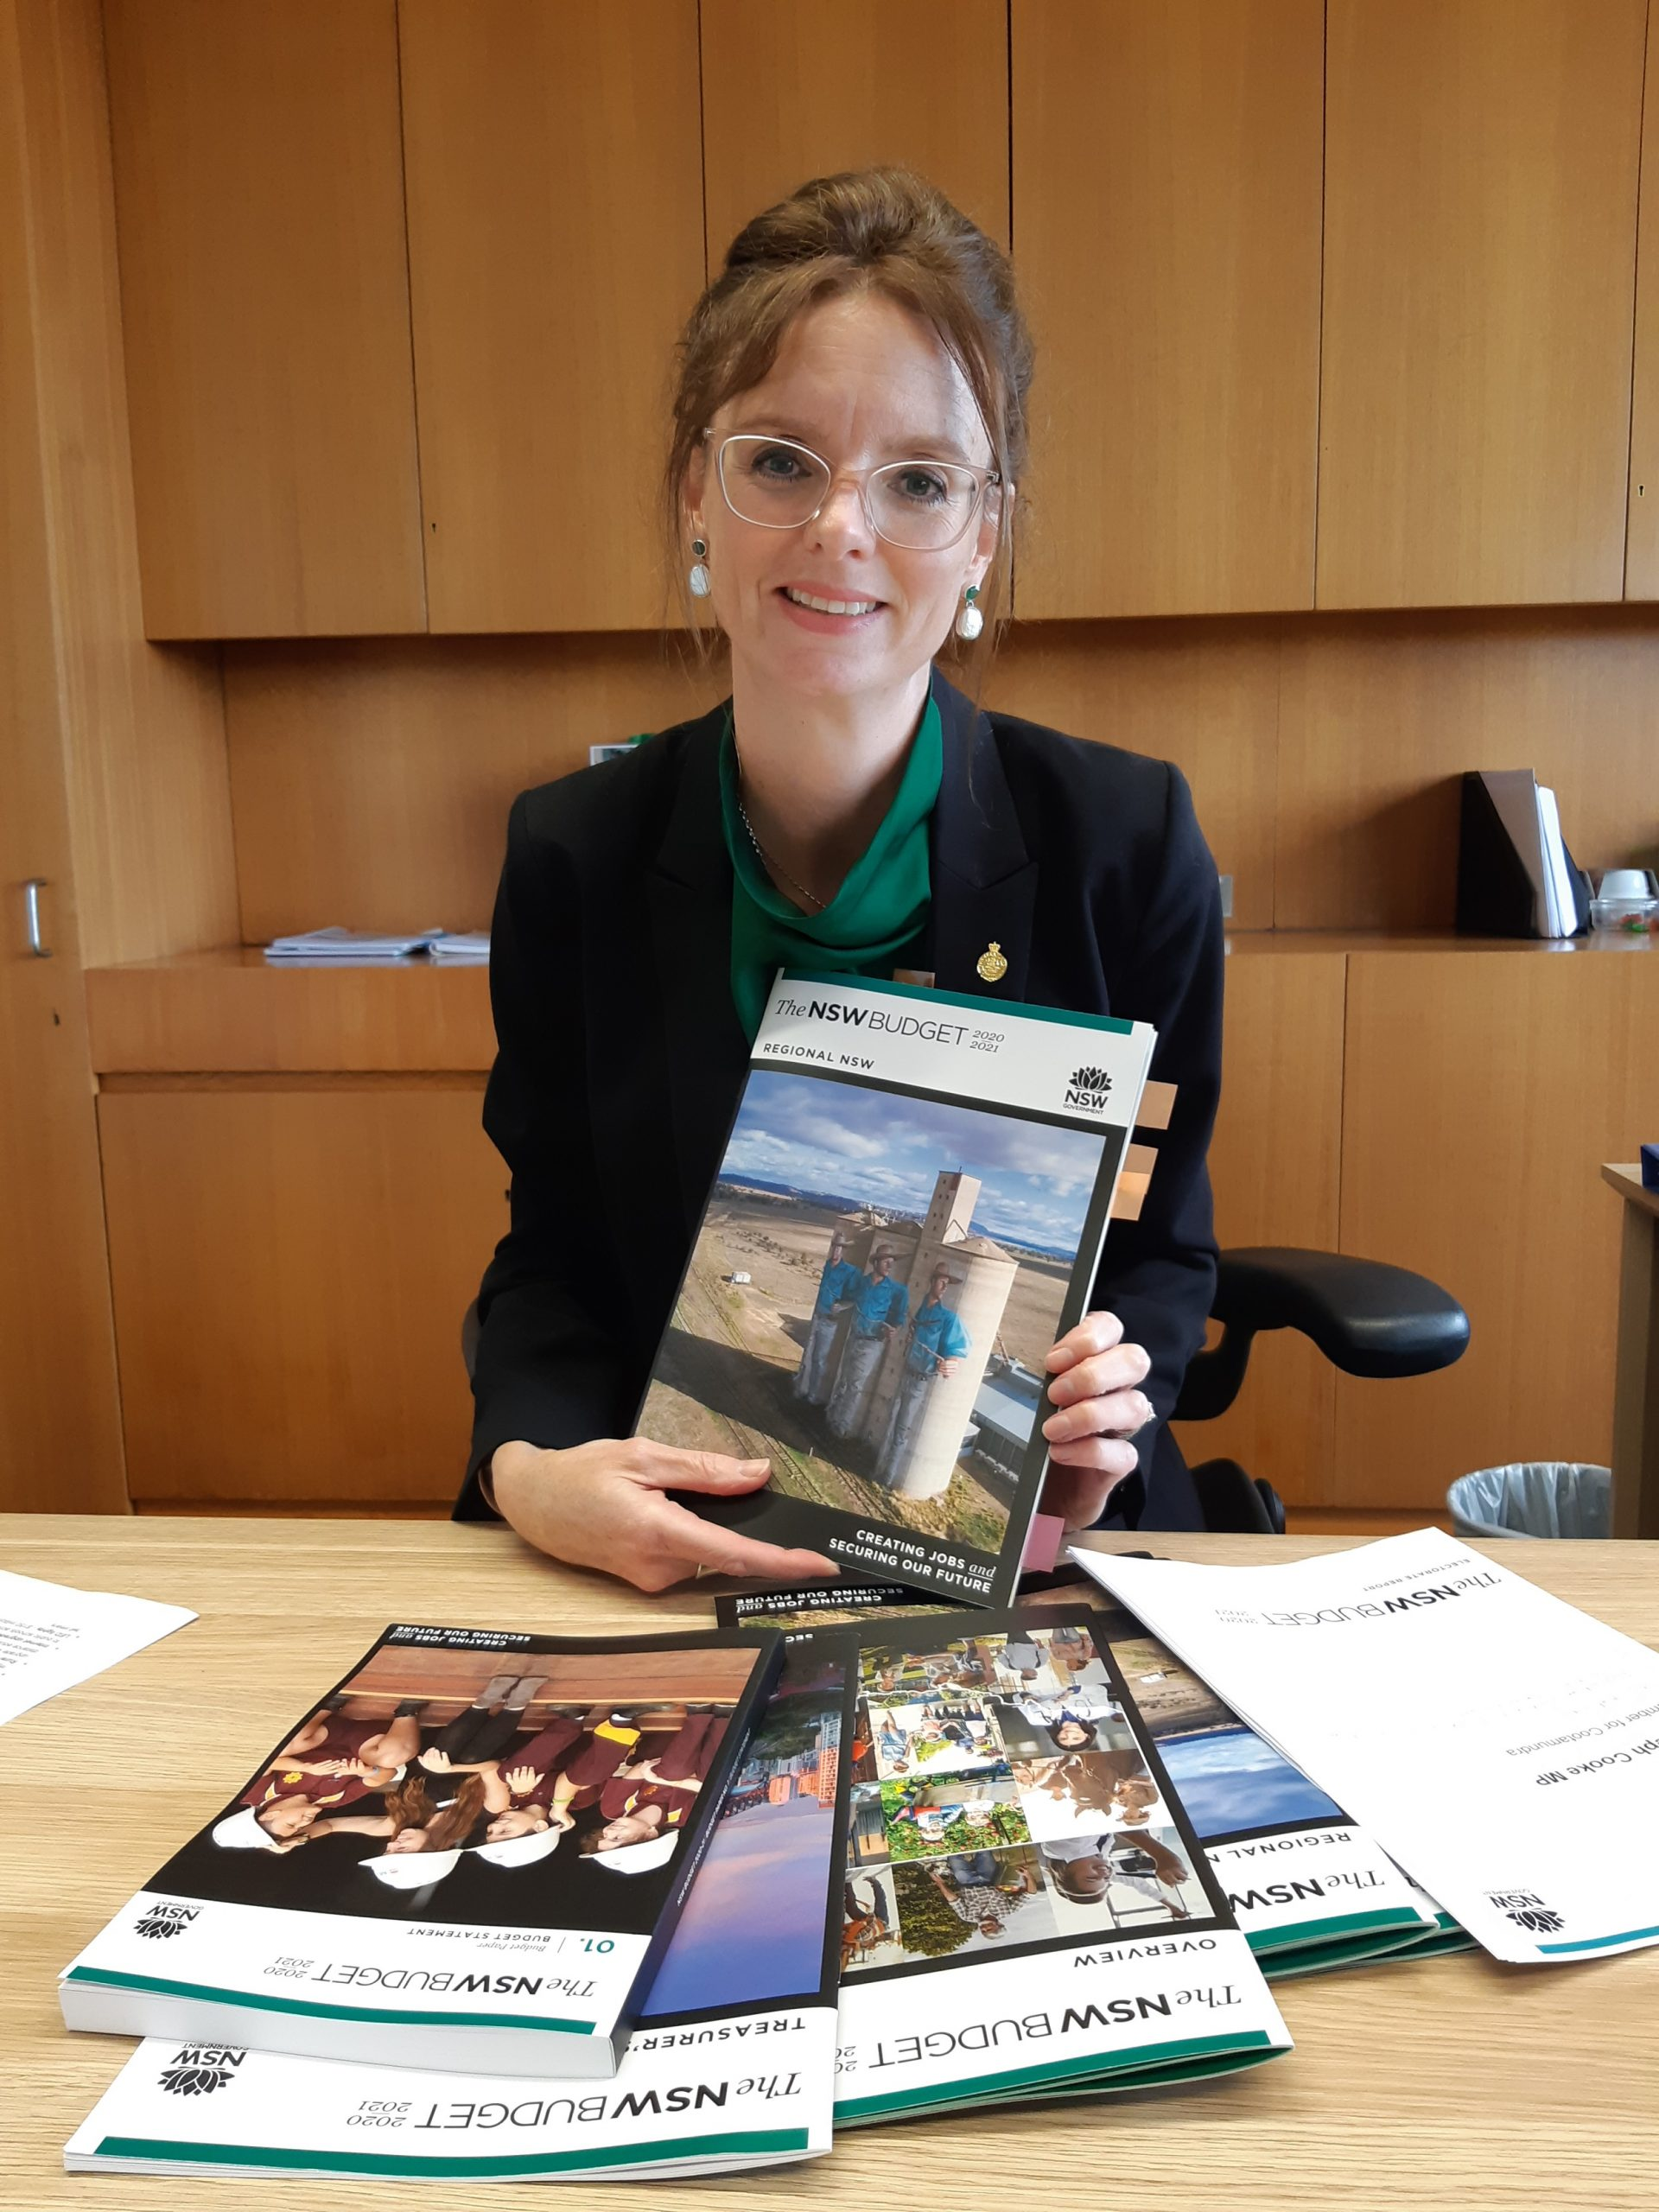 Steph Cooke sits at a timber desk with budget papers in front of her. She holds budget papers and smiles at the camera.